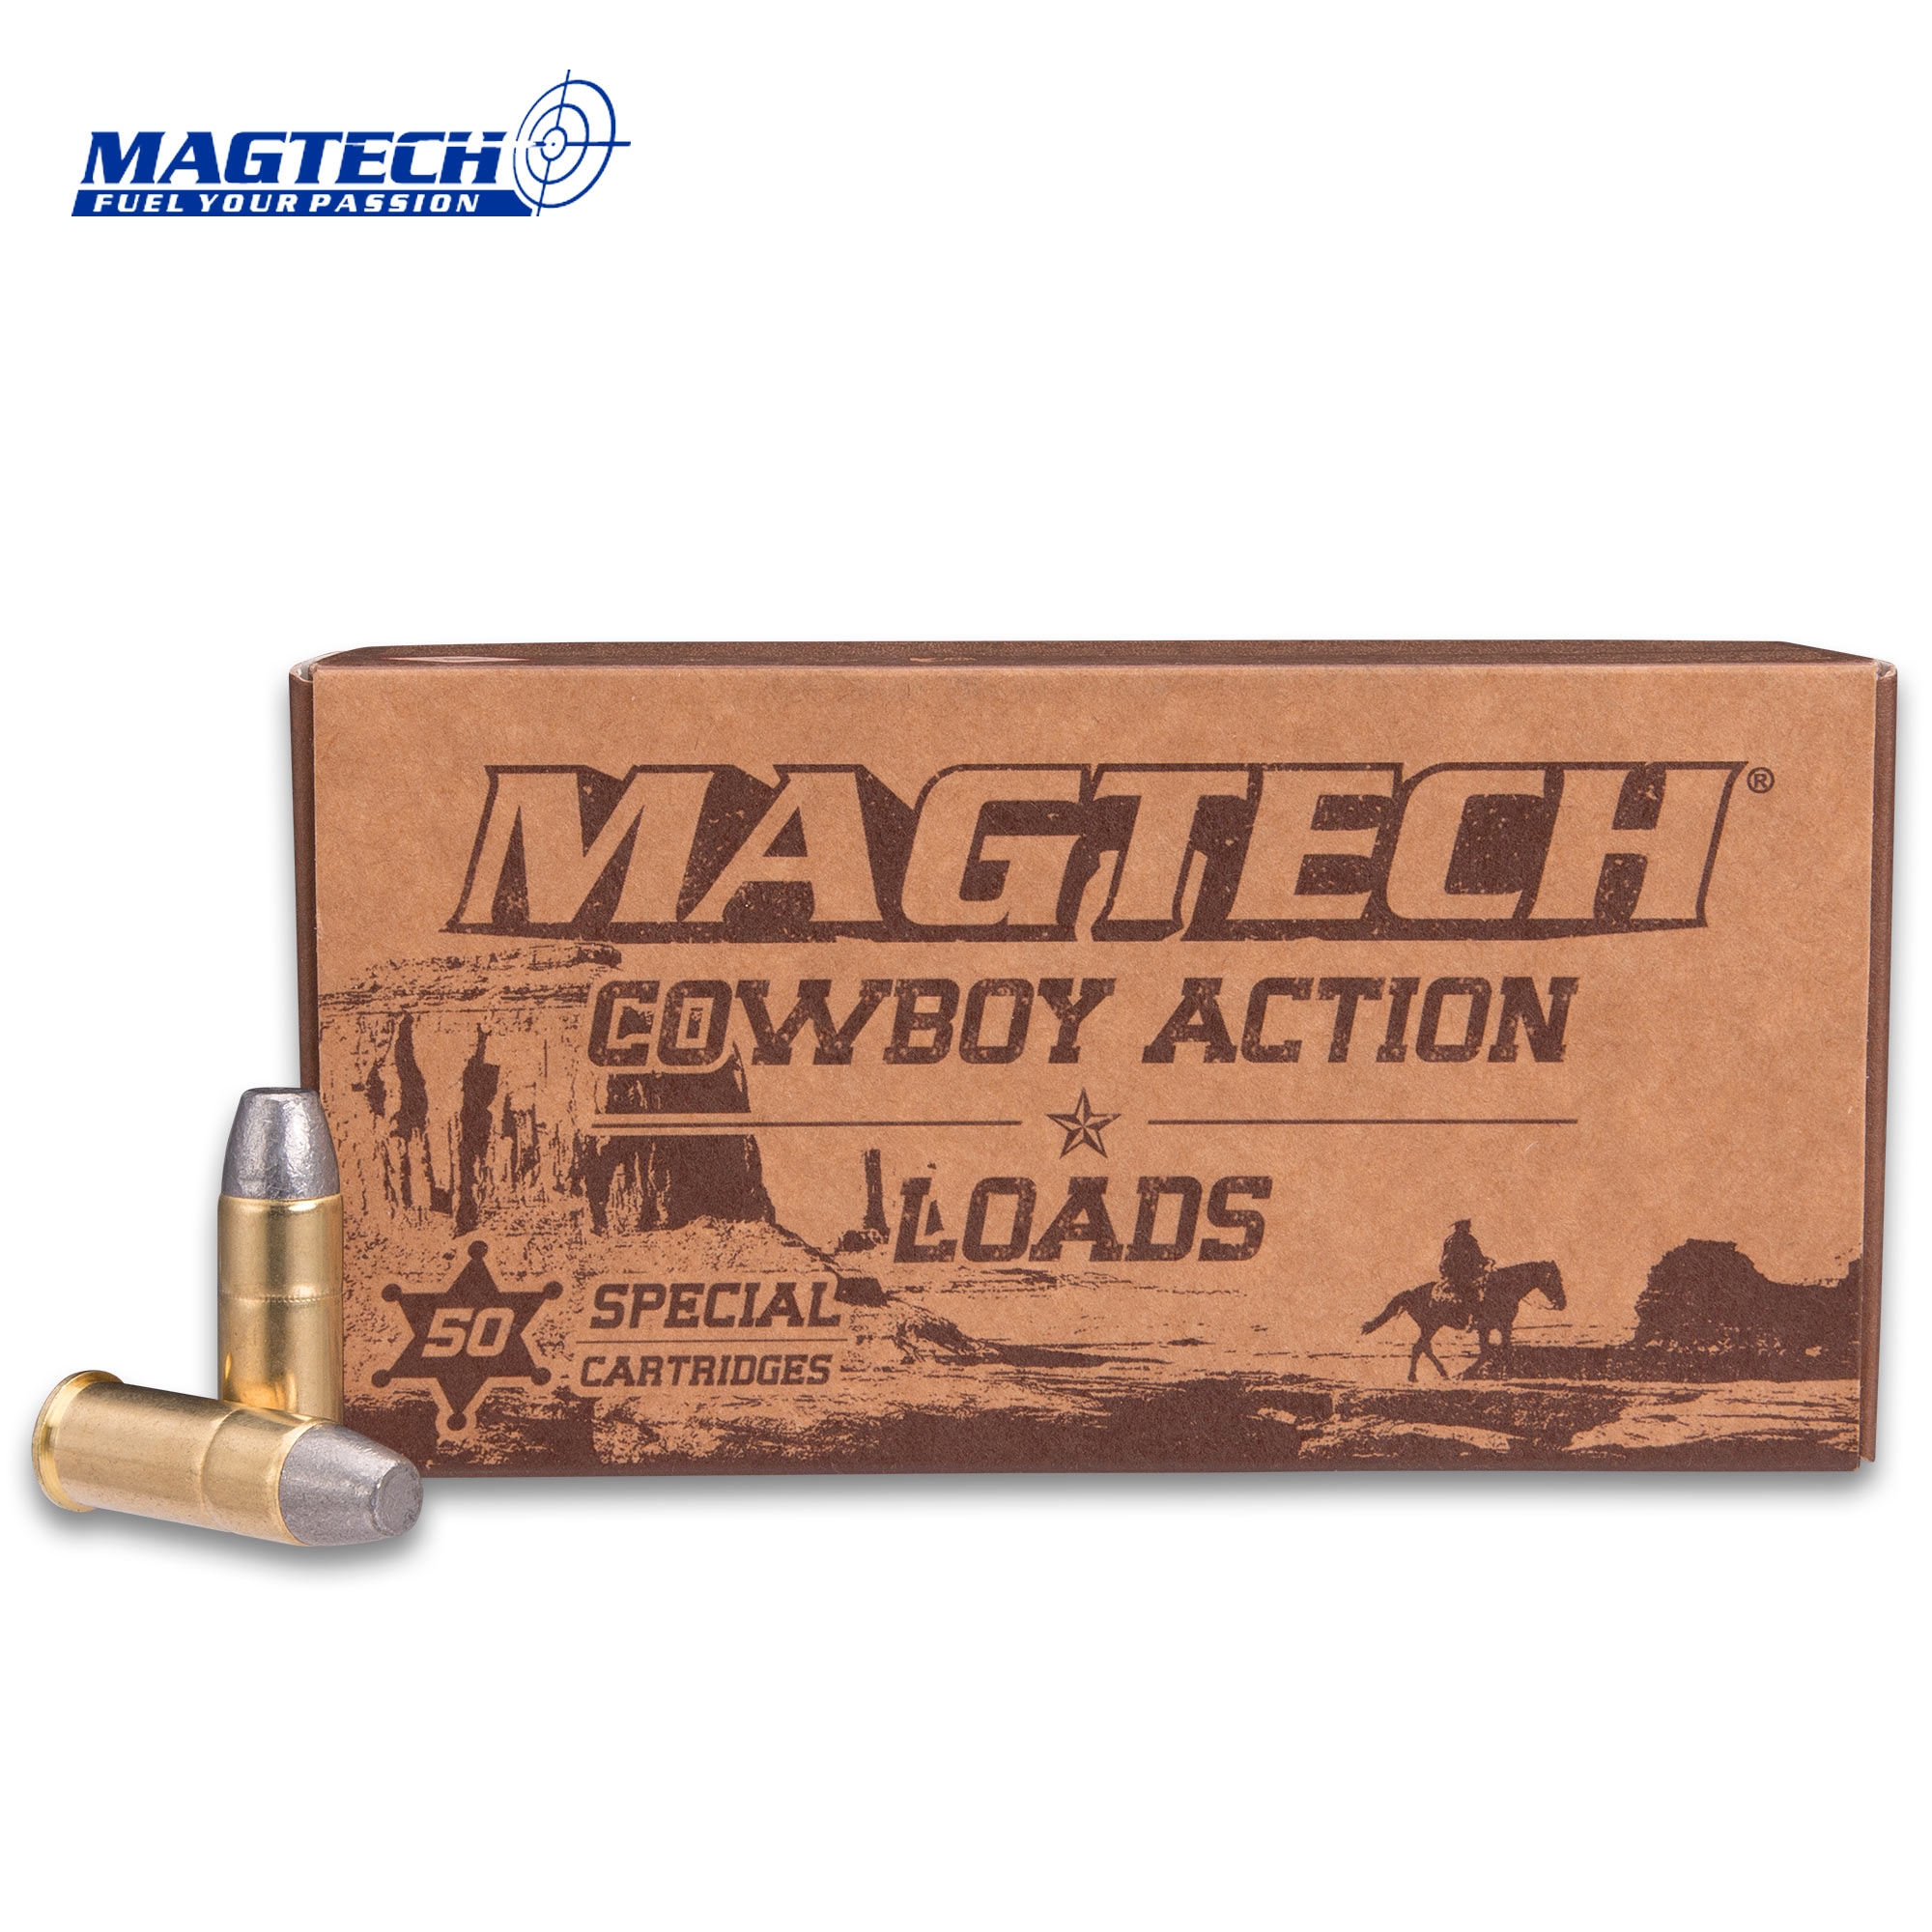 Magtech  44 Special / 240gr Lead Flat Nose Ammunition - Box of 50